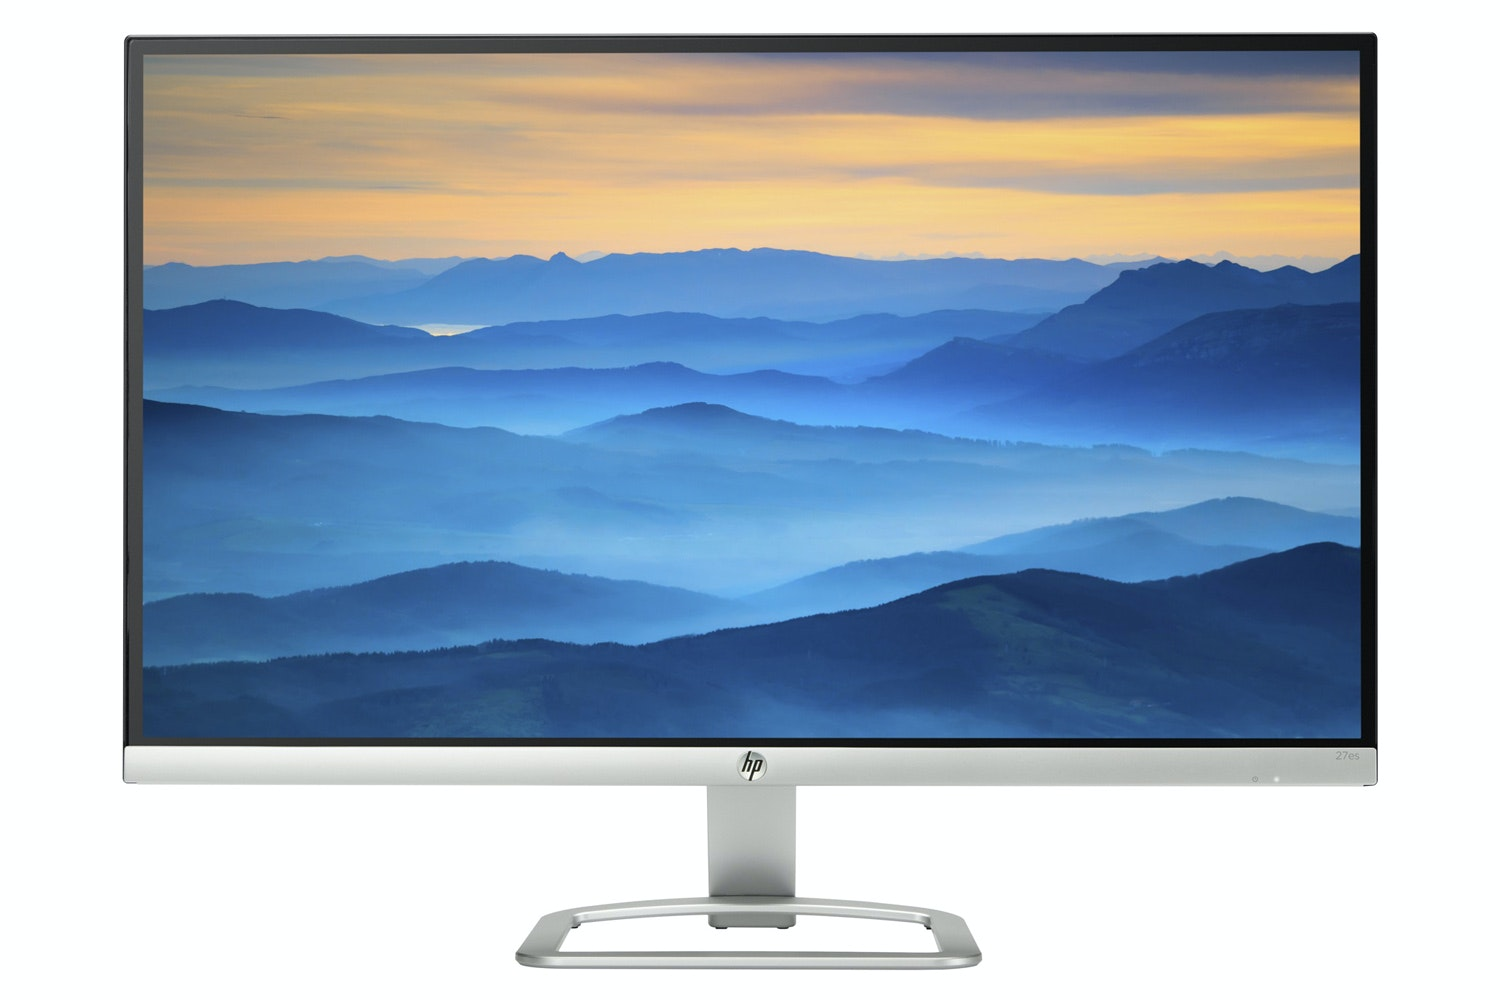 HP 27es Full HD LCD Monitor